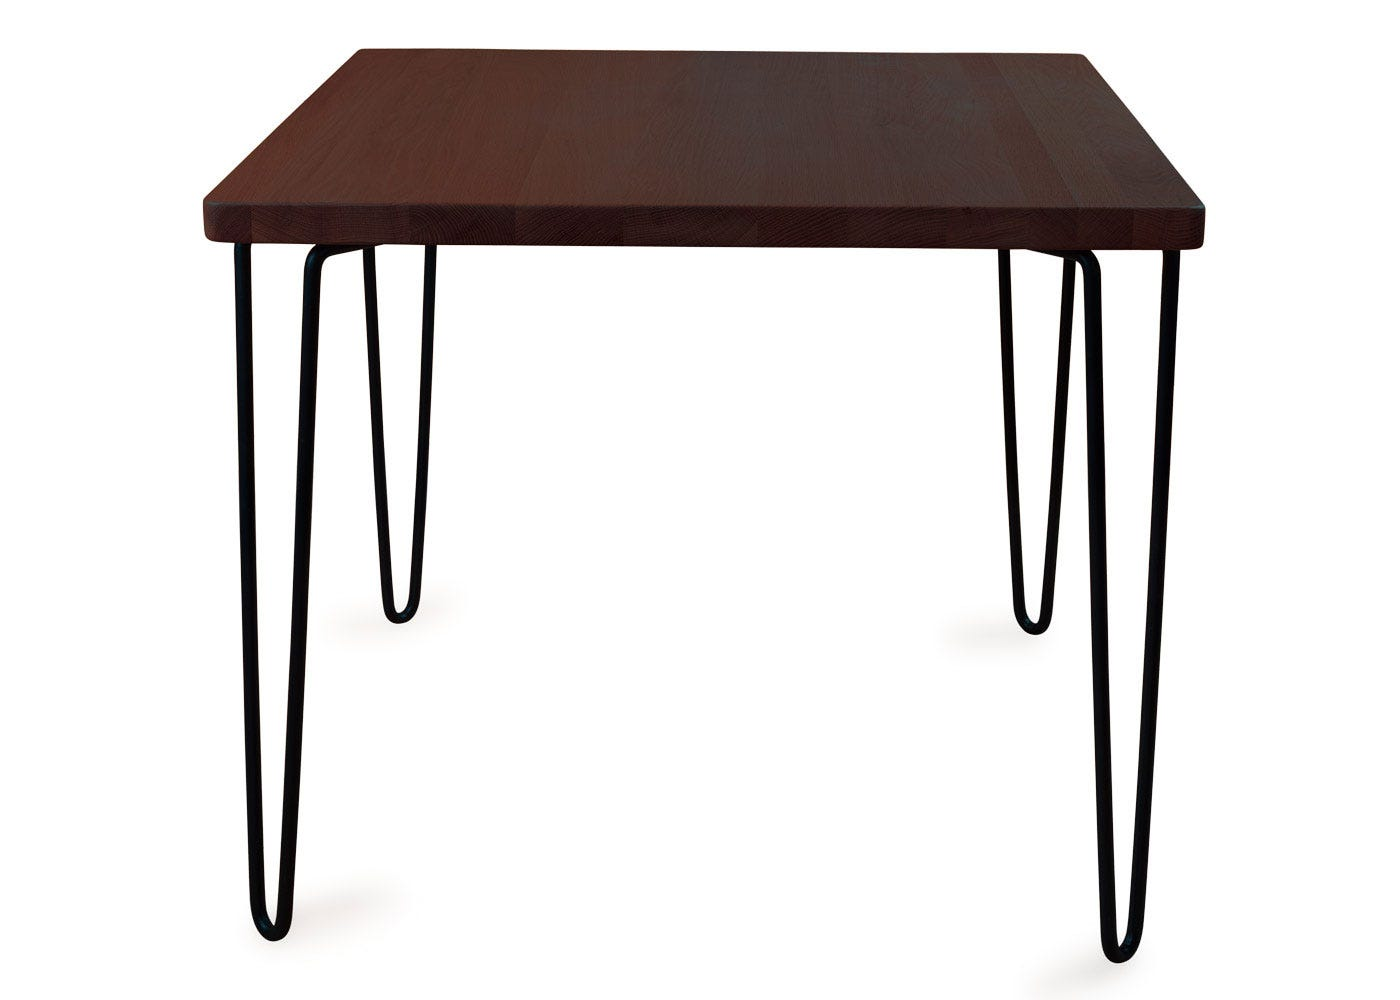 As shown: Brunel dining table square dark wood